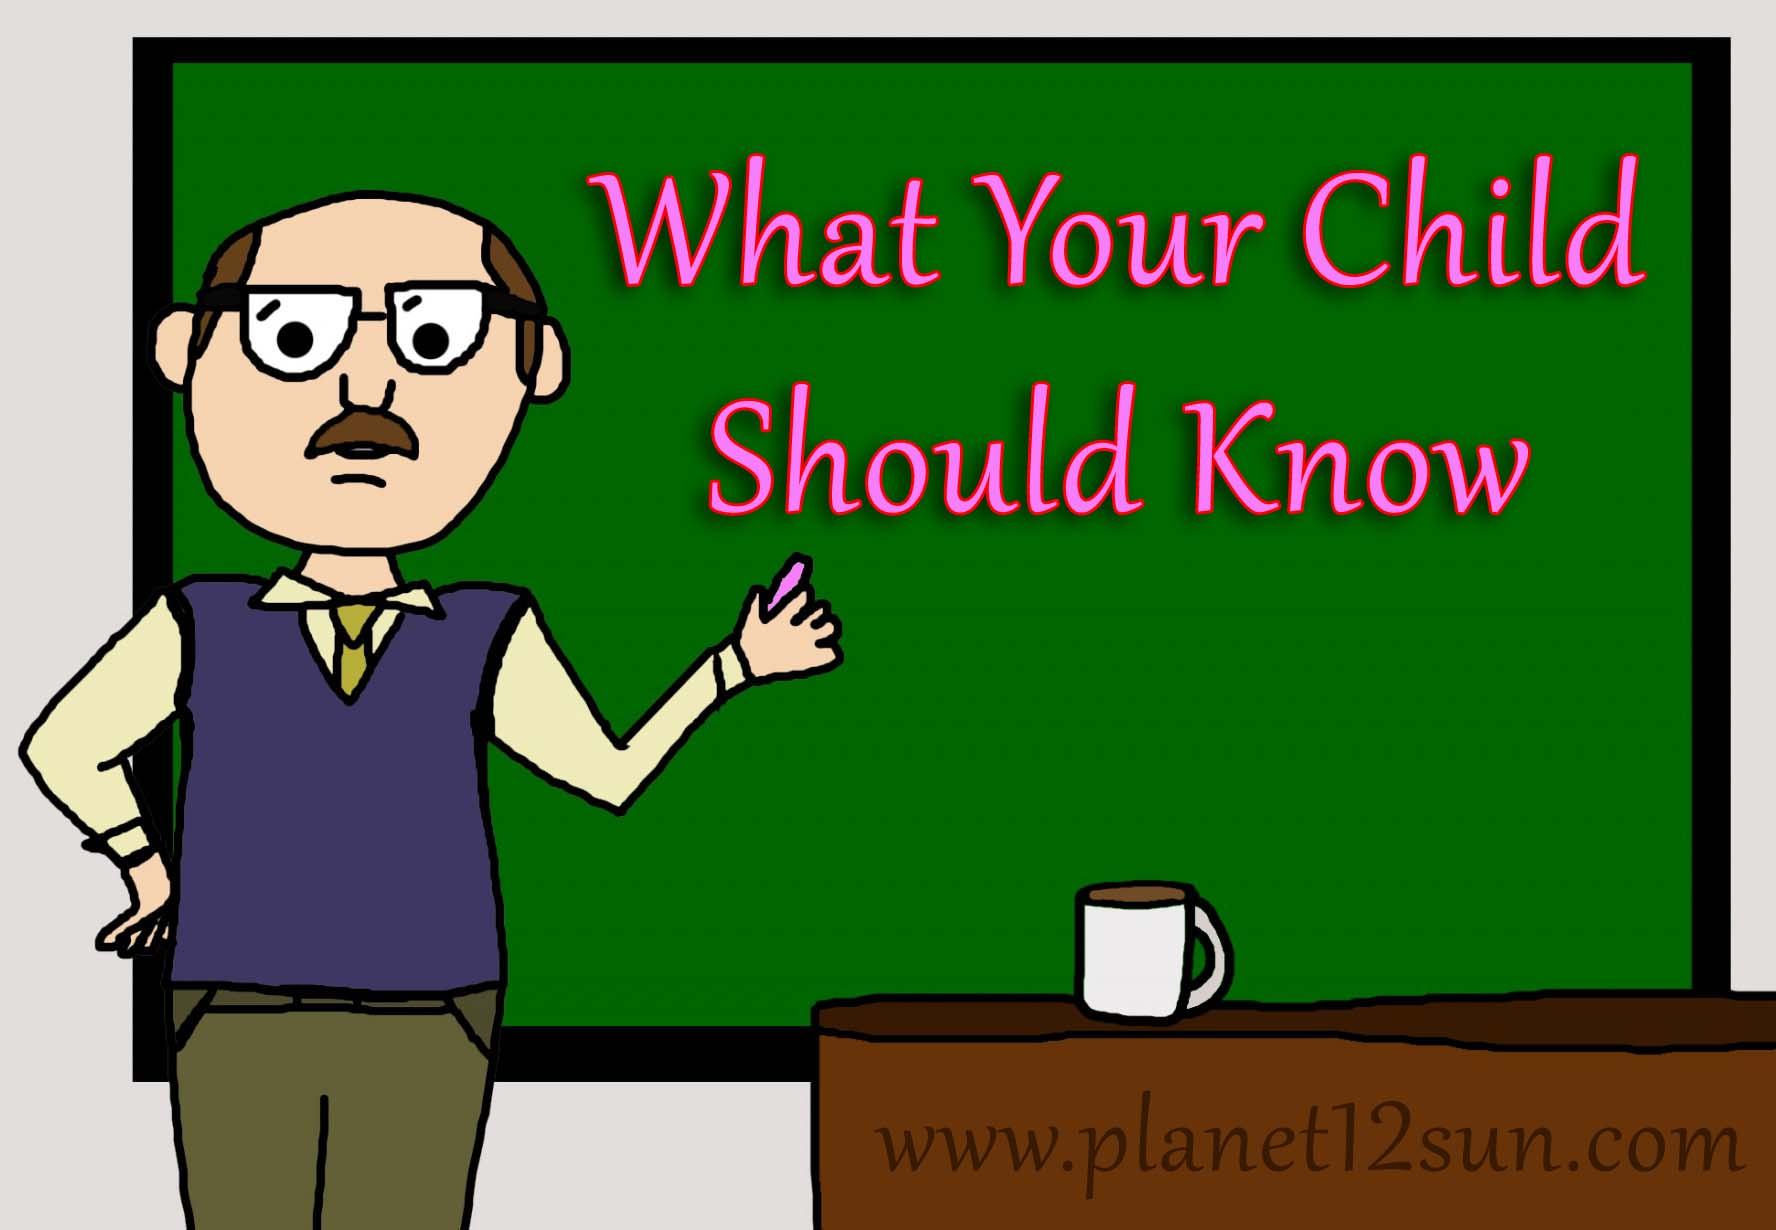 What should your child know